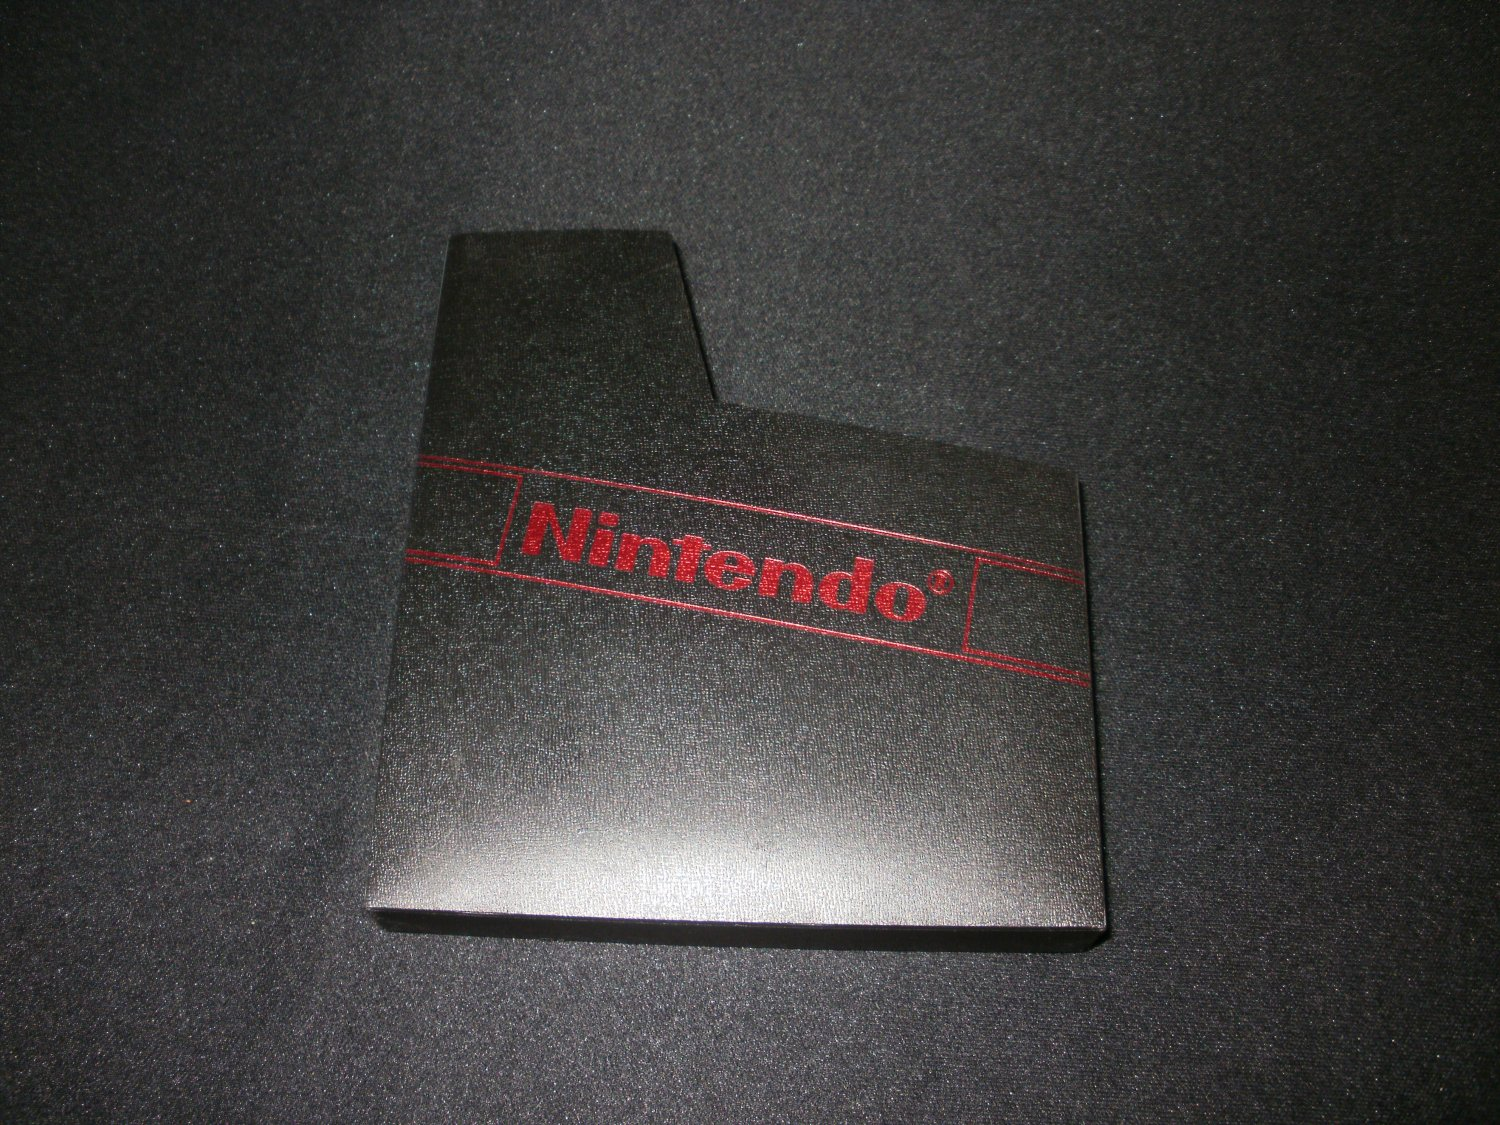 NES Protective Sleeve - Nintendo NES - Officially Licensed Product